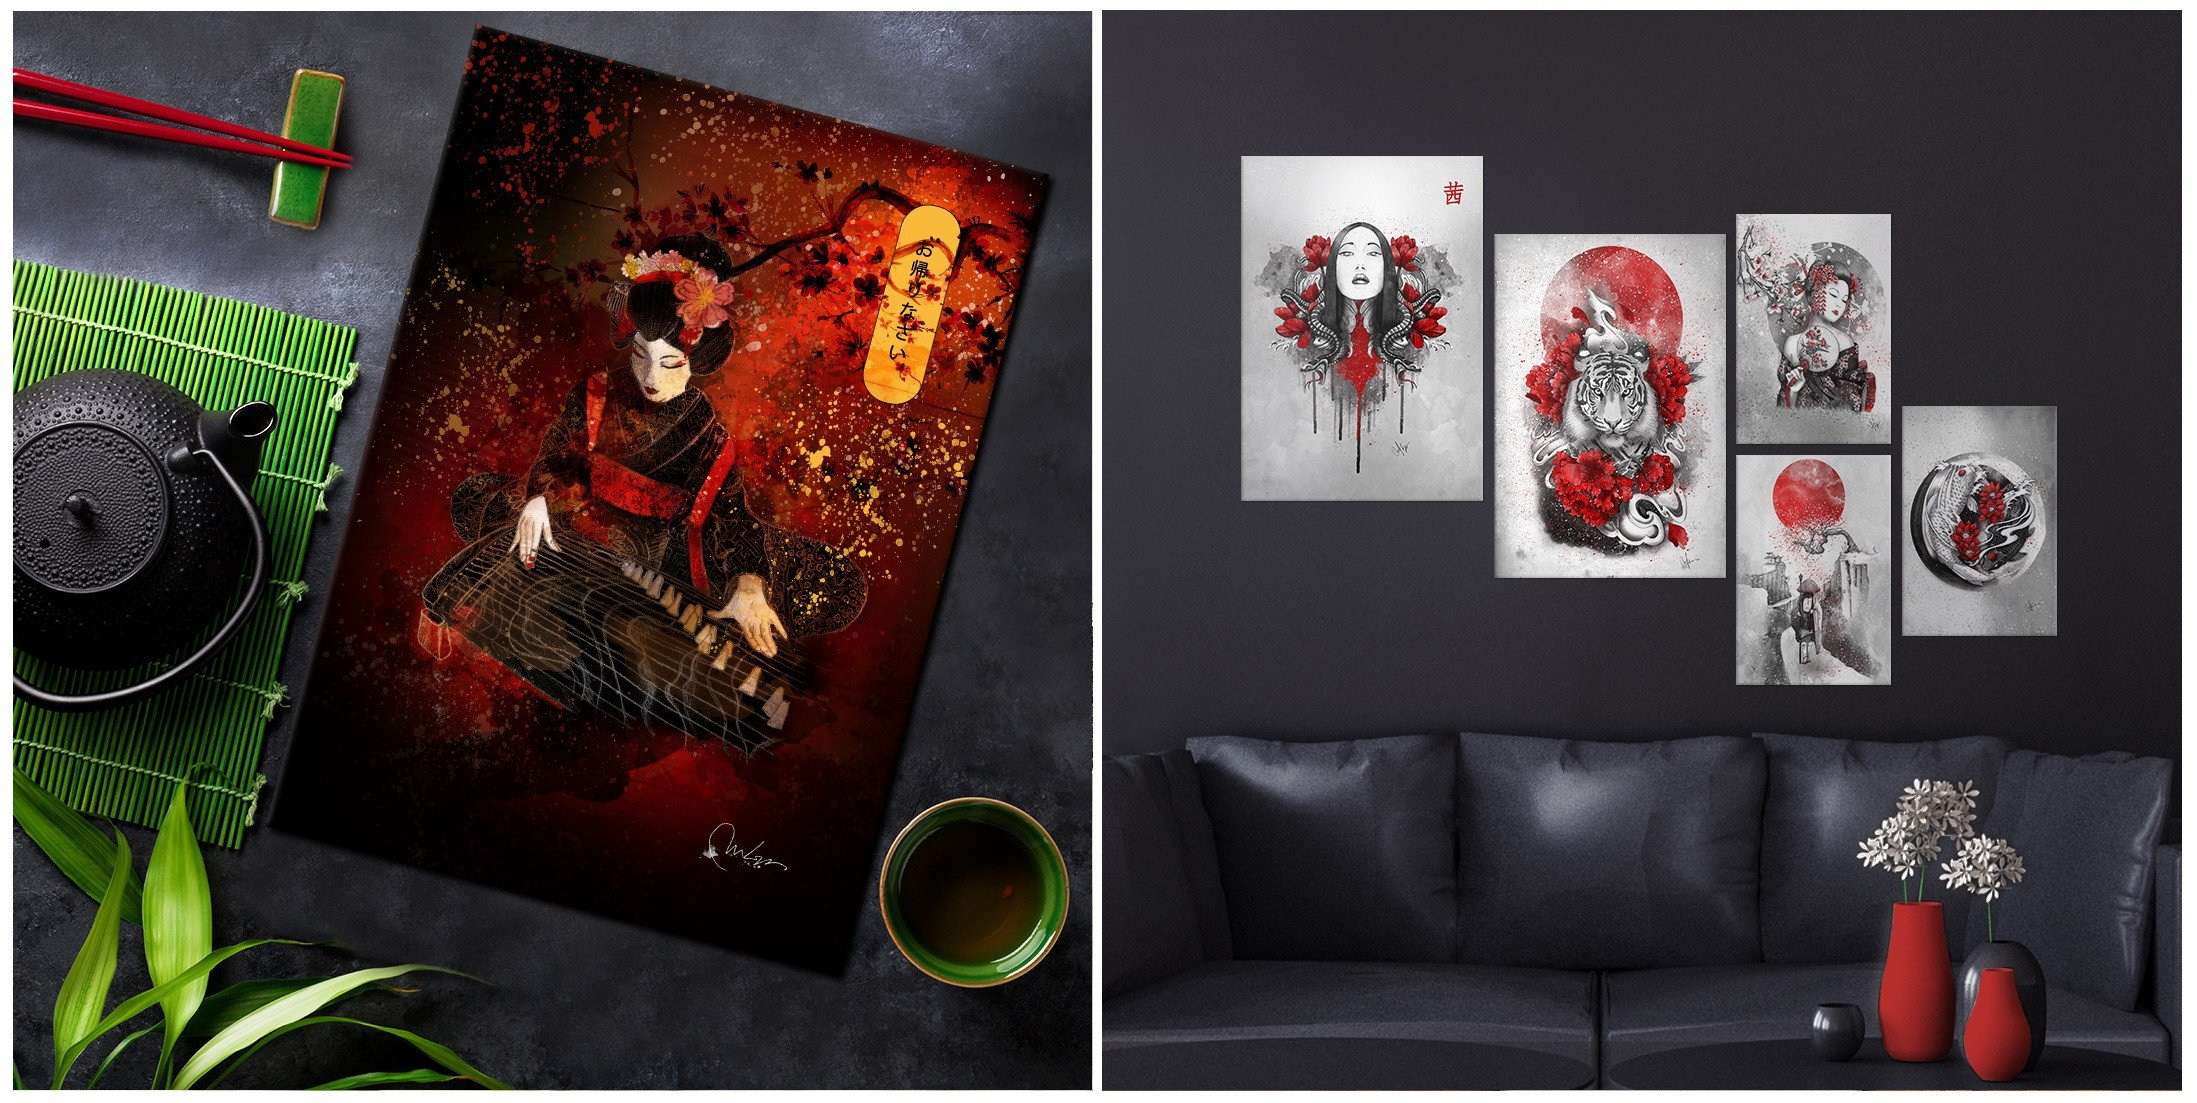 turning japanese metal posters for asia lovers